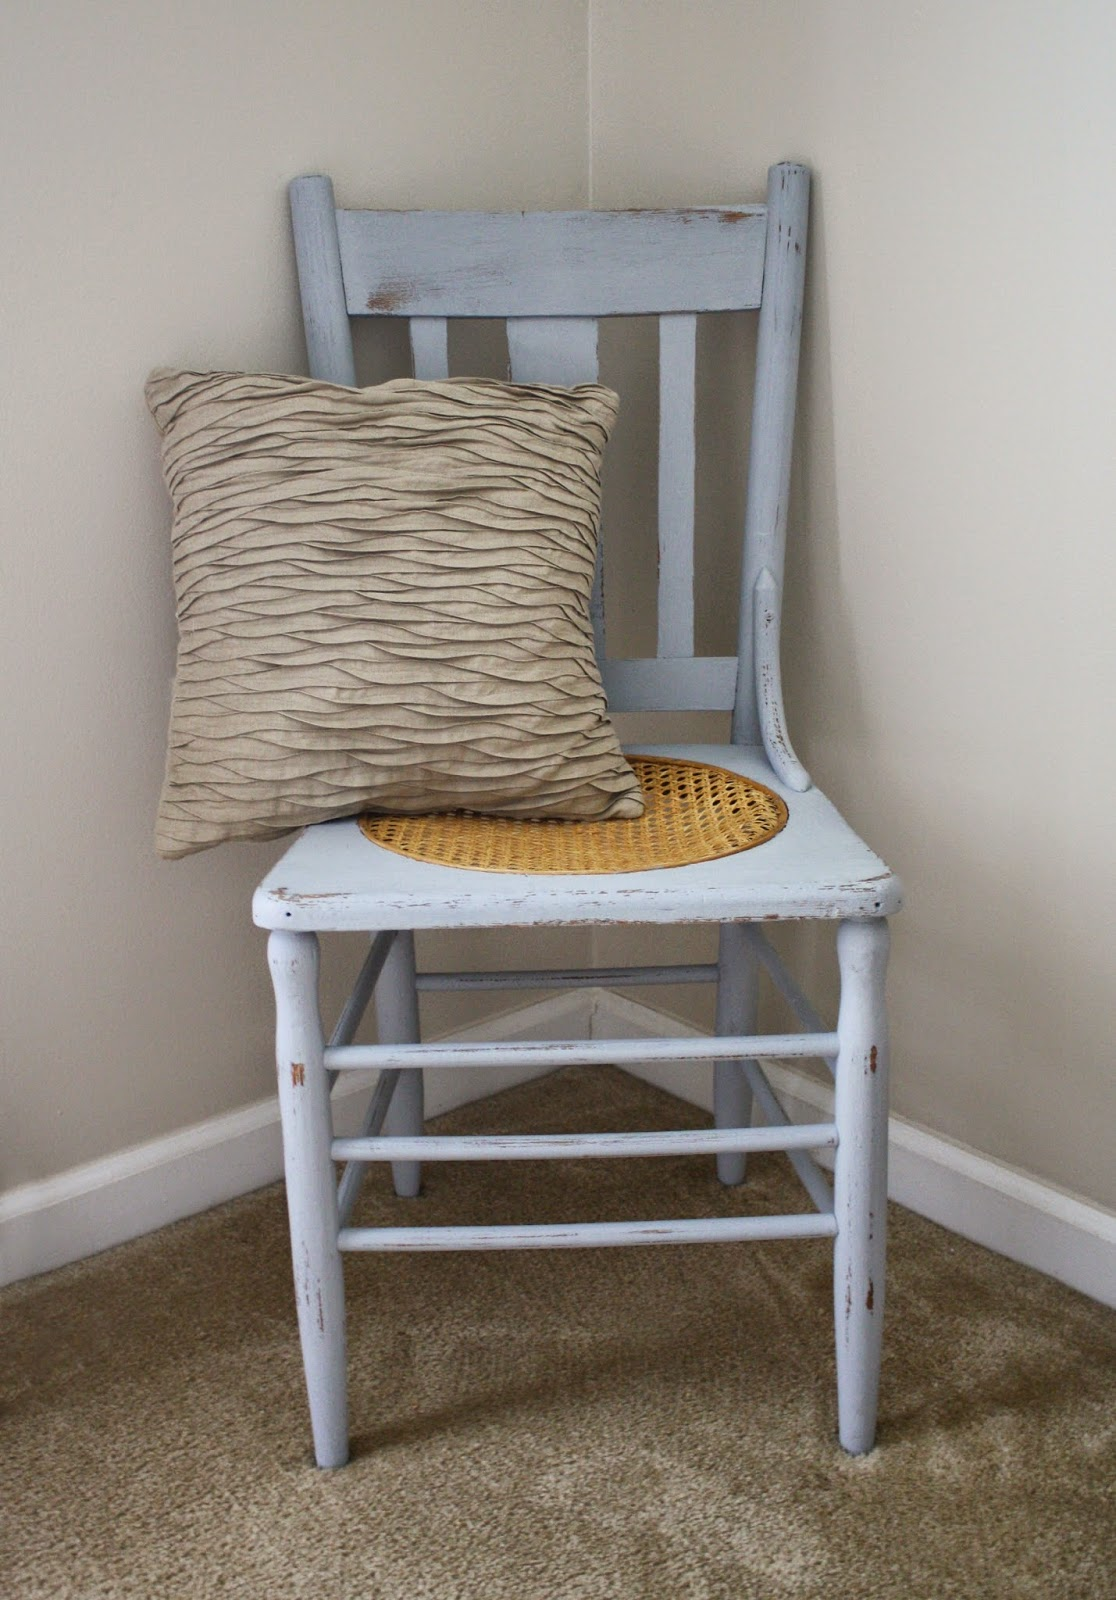 http://www.livealittlewilderblog.com/2014/06/my-blue-chair-and-intro-to-chalk-paint.html